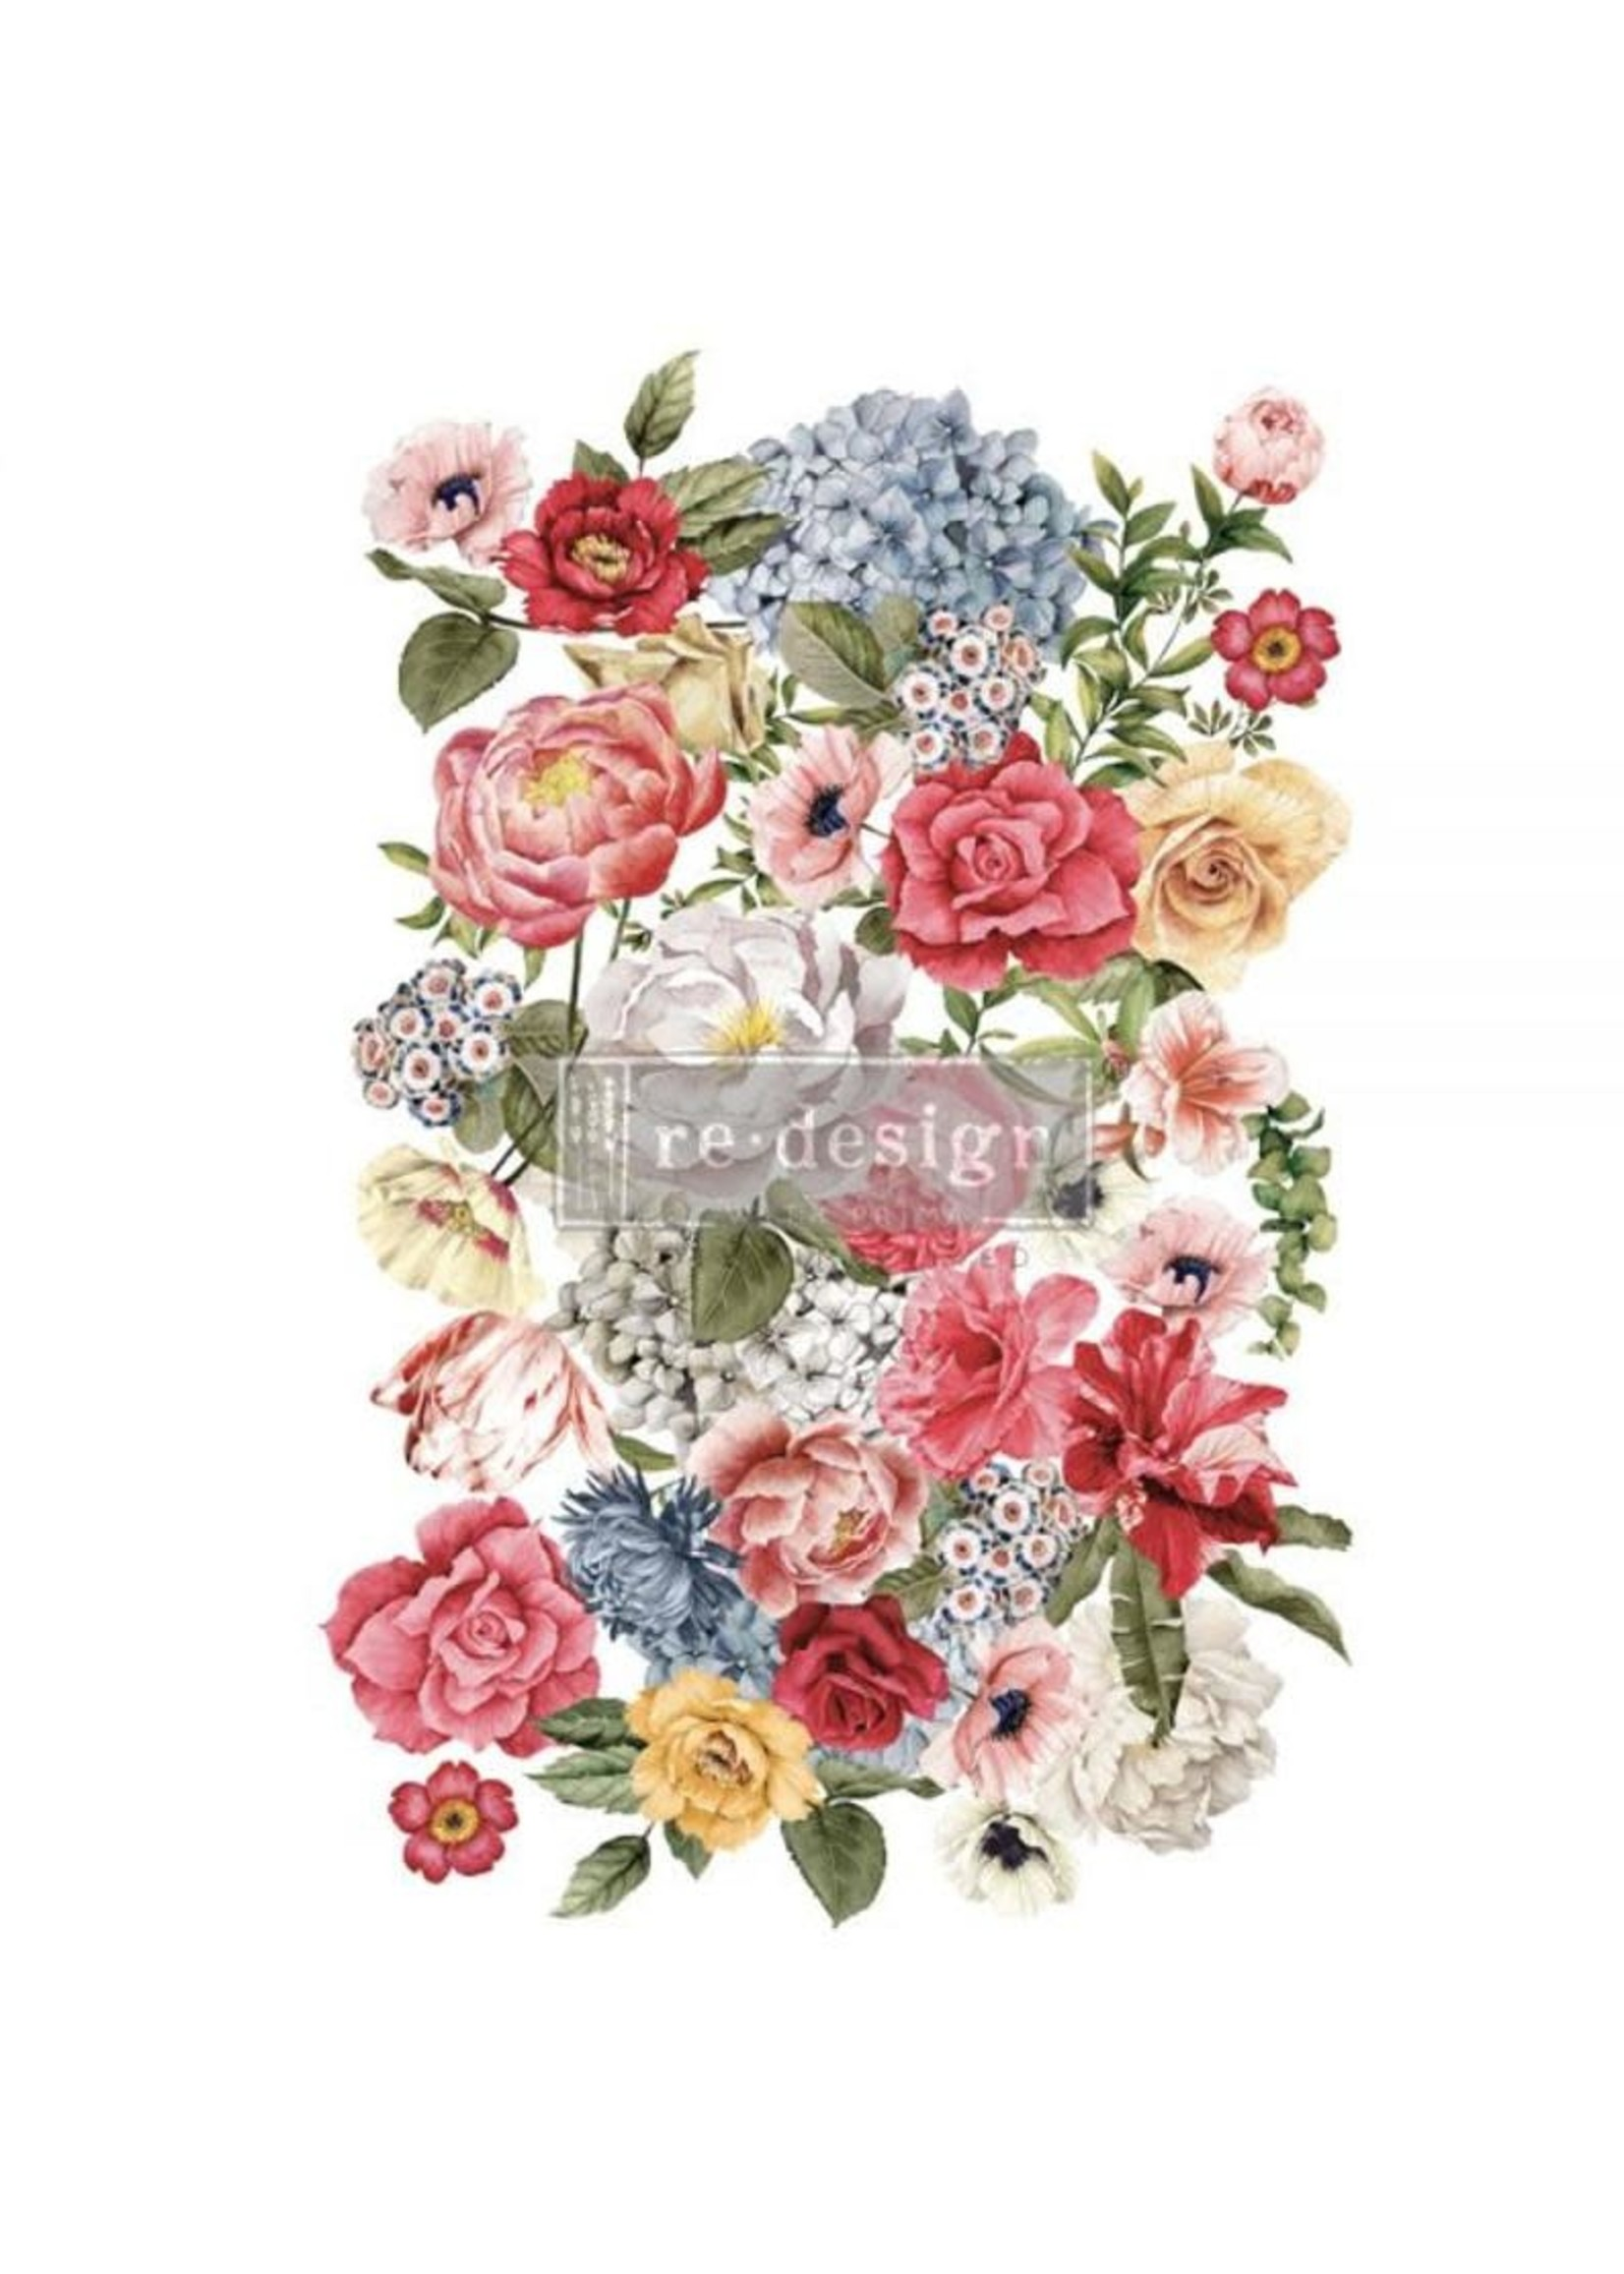 Re-Design with Prima® Wondrous Floral II Re·Design with Prima® Transfers